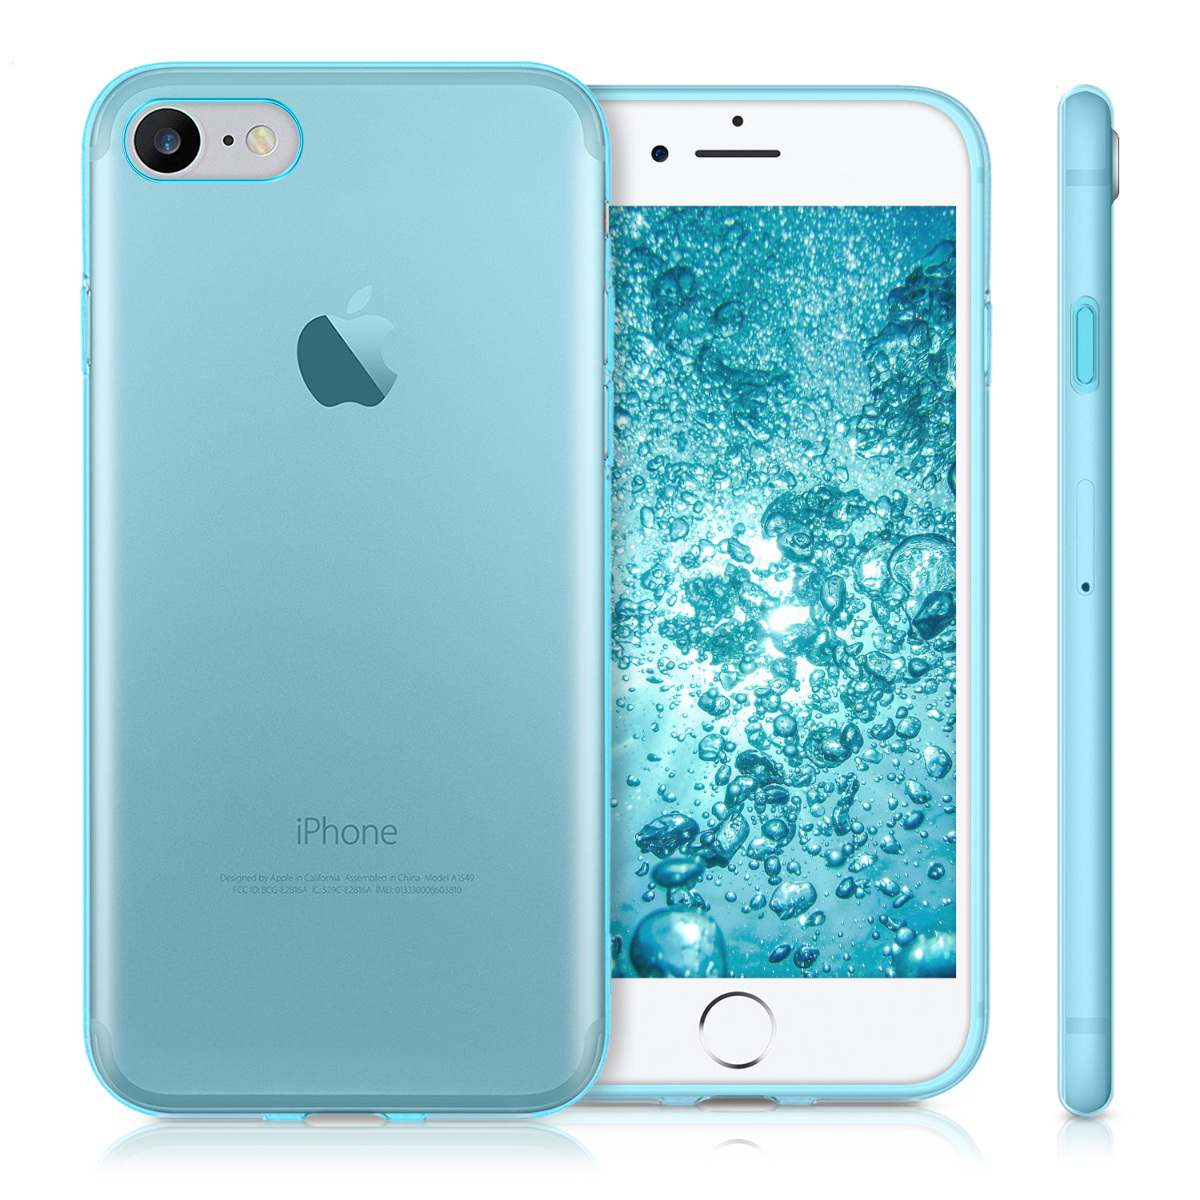 Kwmobile funda de tpu silicona para apple iphone 7 4 7 carcasa protectora ebay - Fundas iphone silicona ...